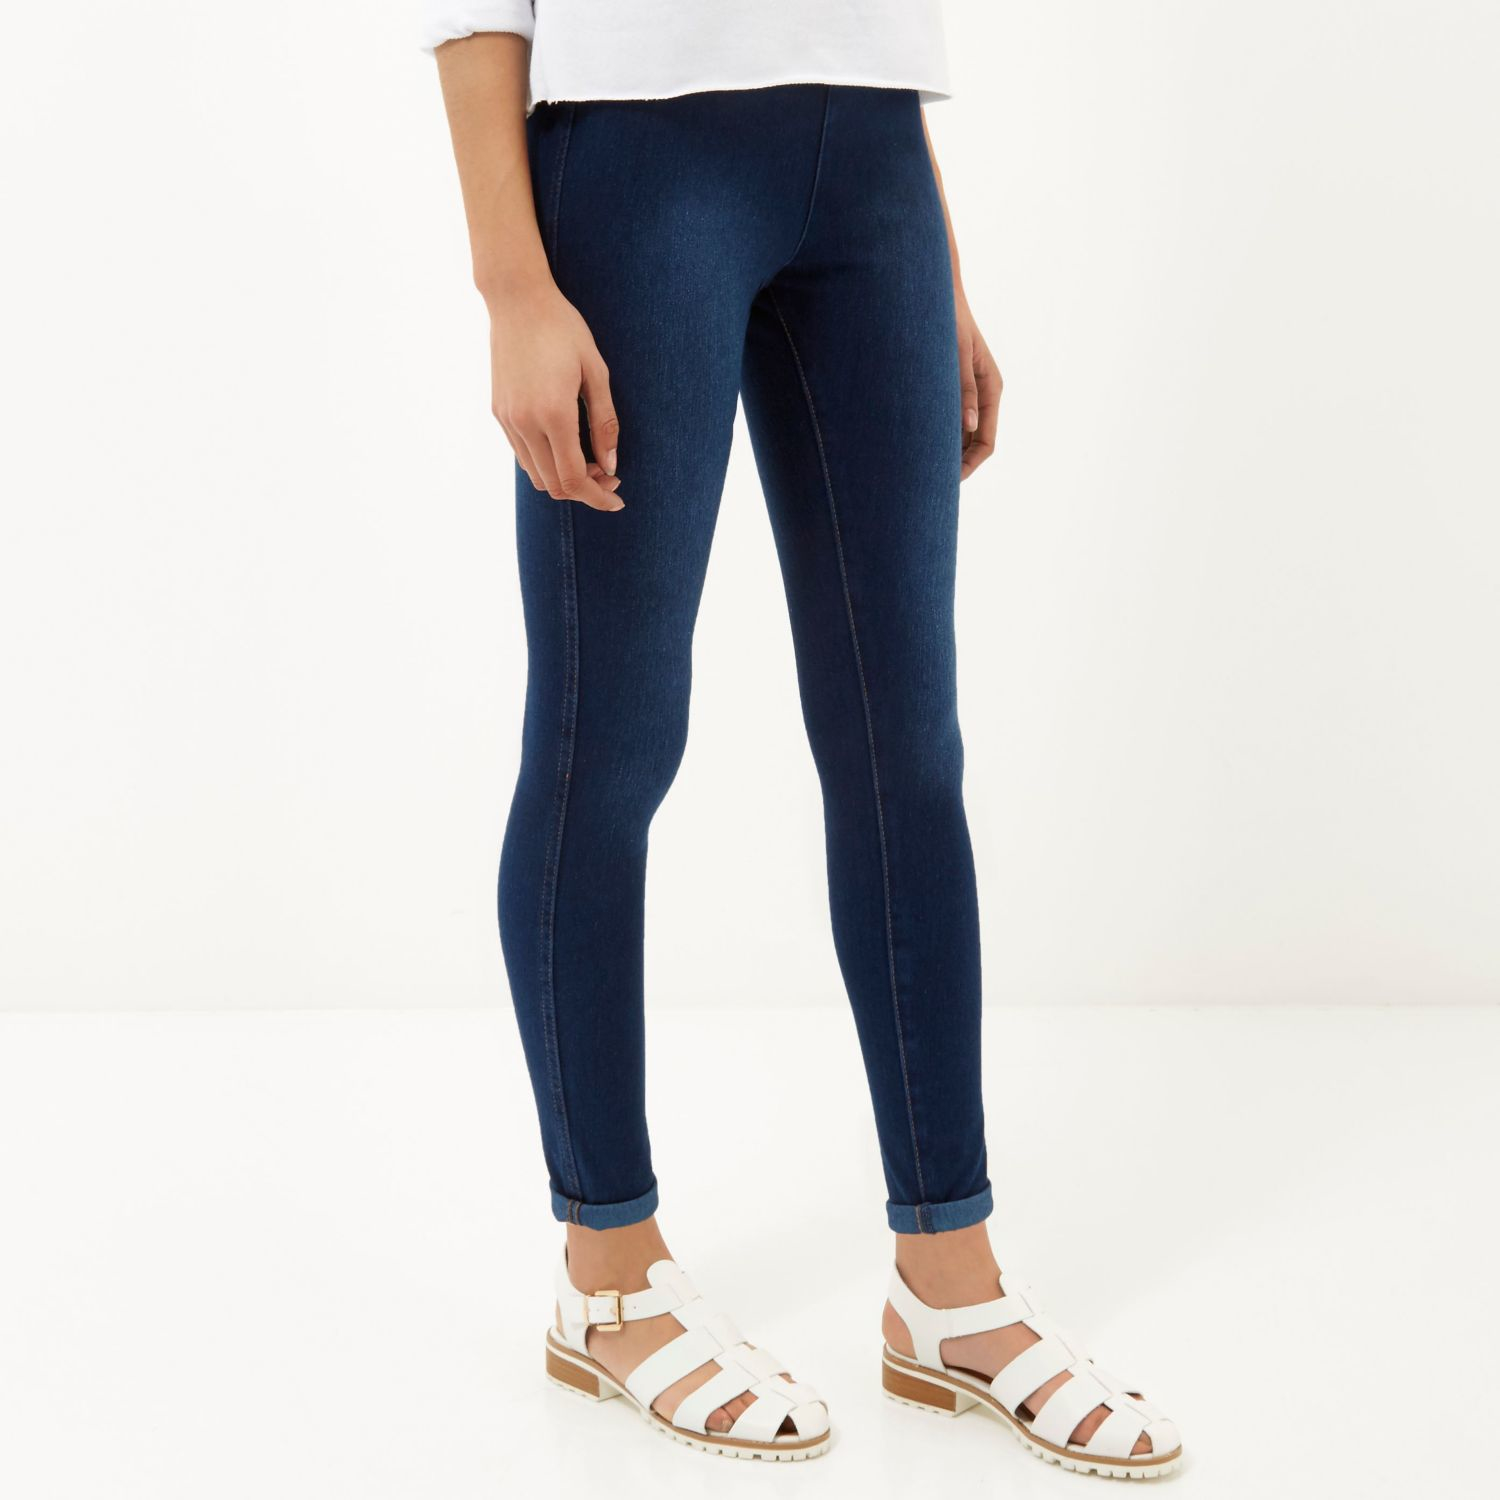 Lyst - River Island Mid Wash High Waisted Denim Leggings ...